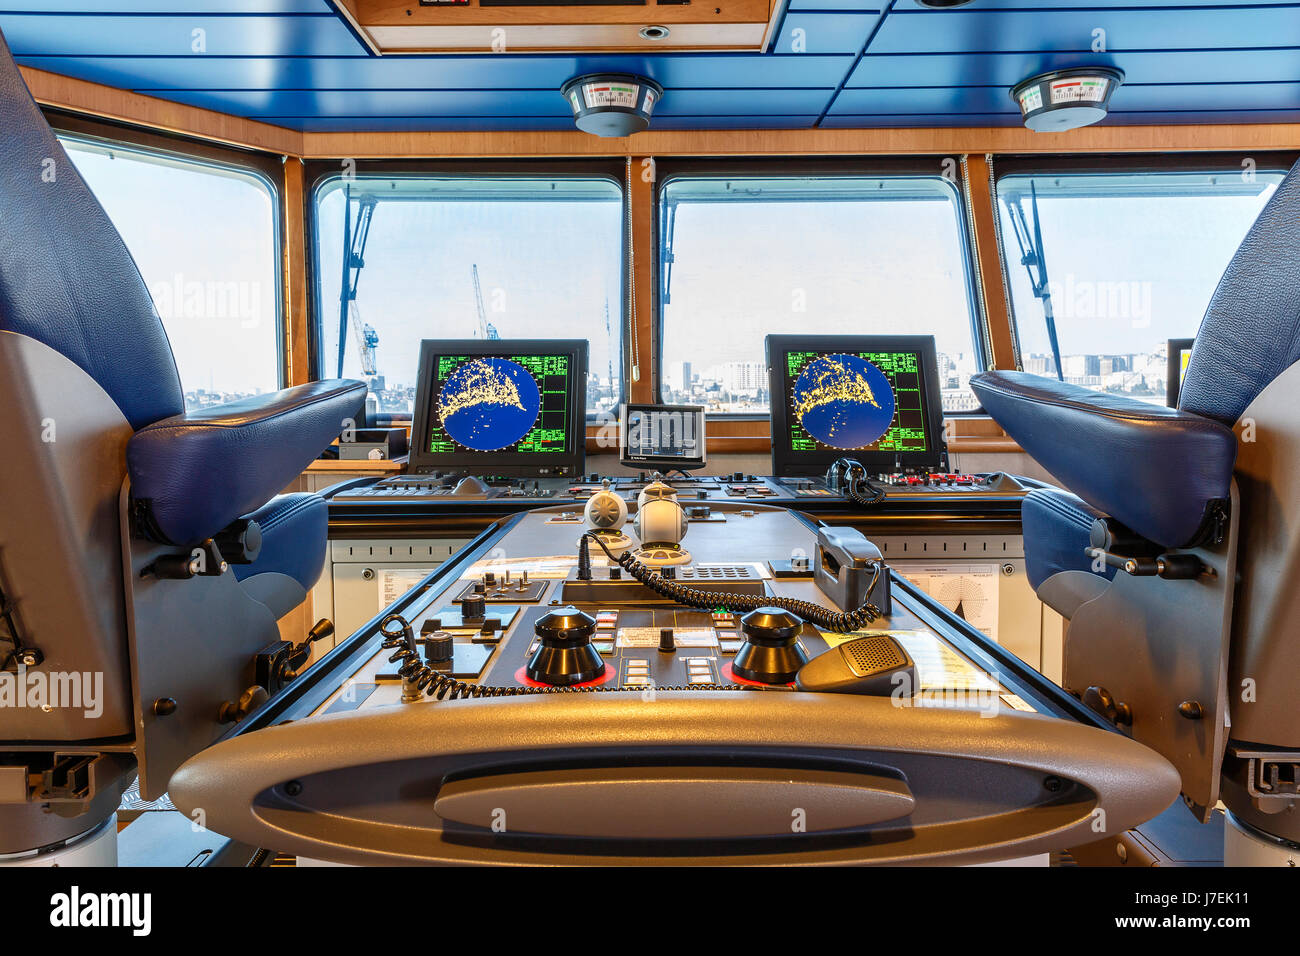 captains cabin on the ship stock photo royalty free